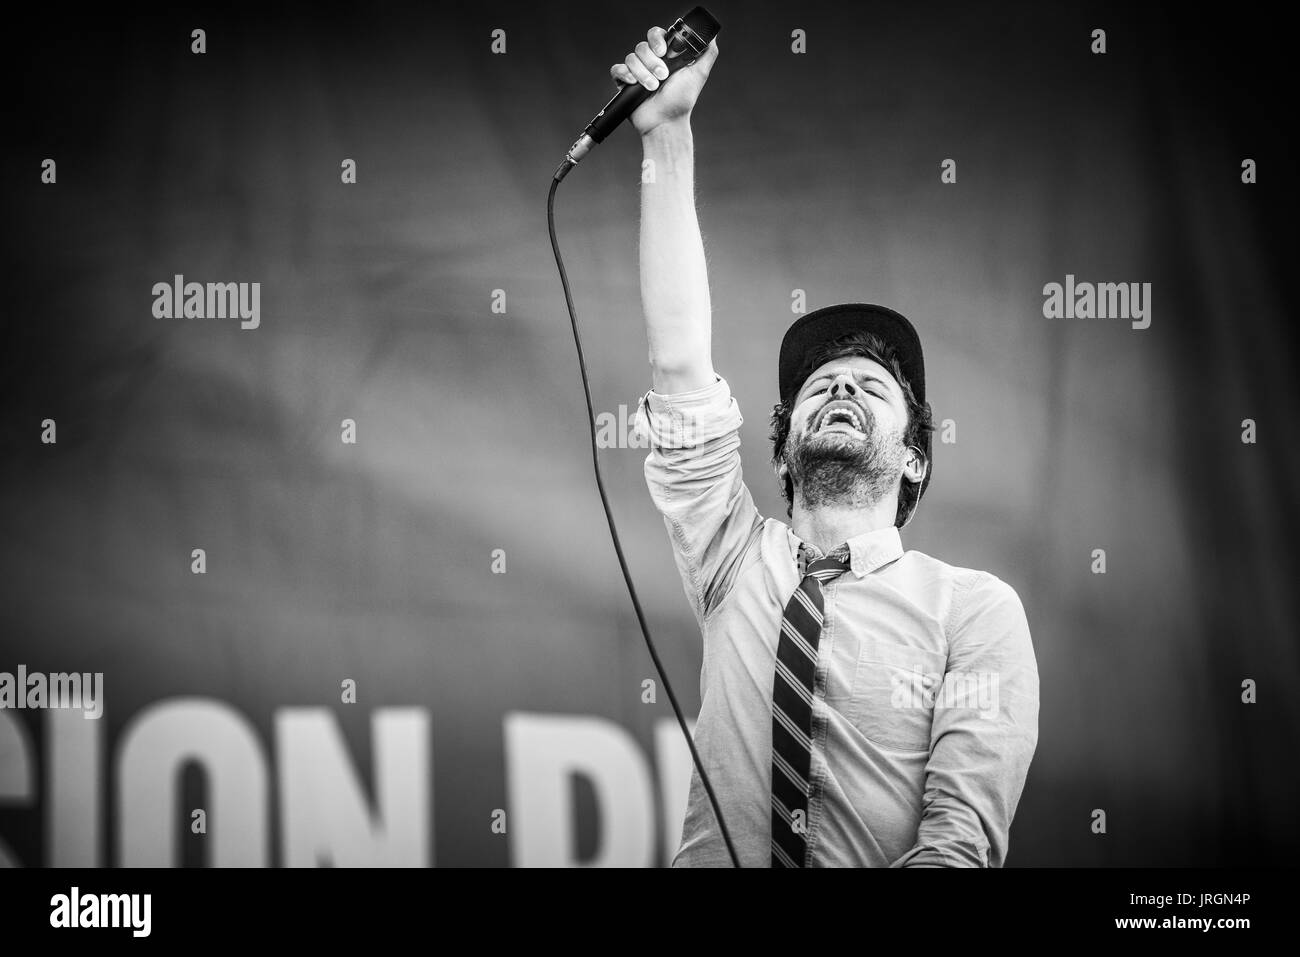 Passion Pit performing at a music festival in British Columbia Canada in black and white. - Stock Image